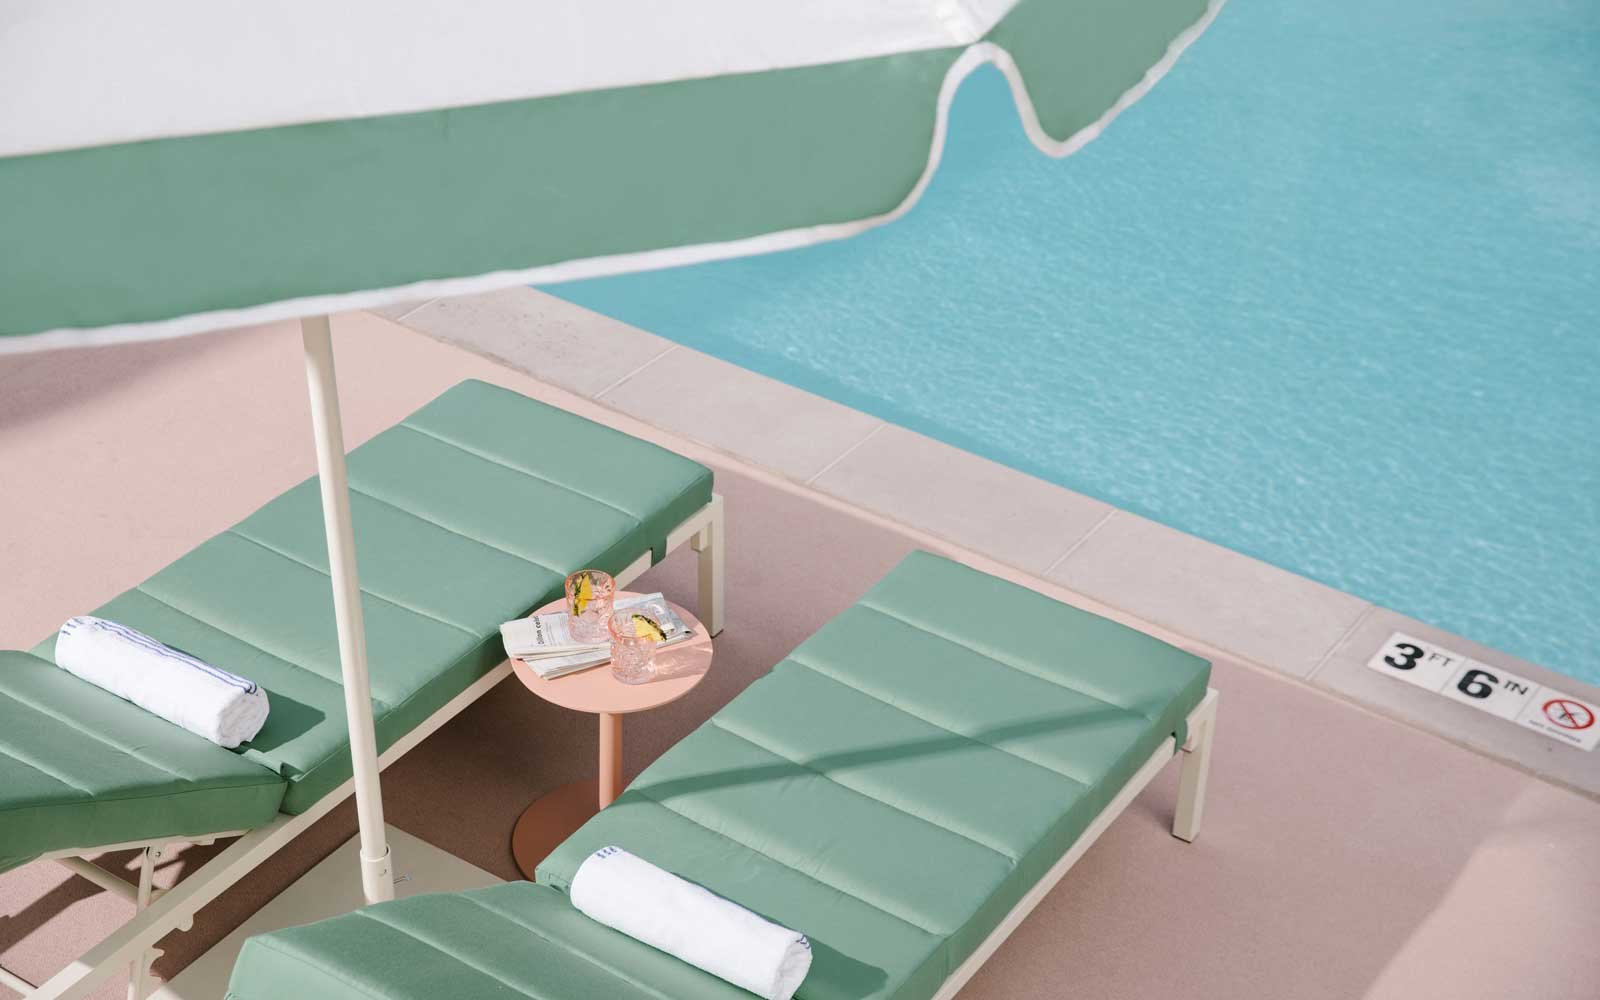 Las Vegas' Newest Resort Will Bring Out the Millennial in You